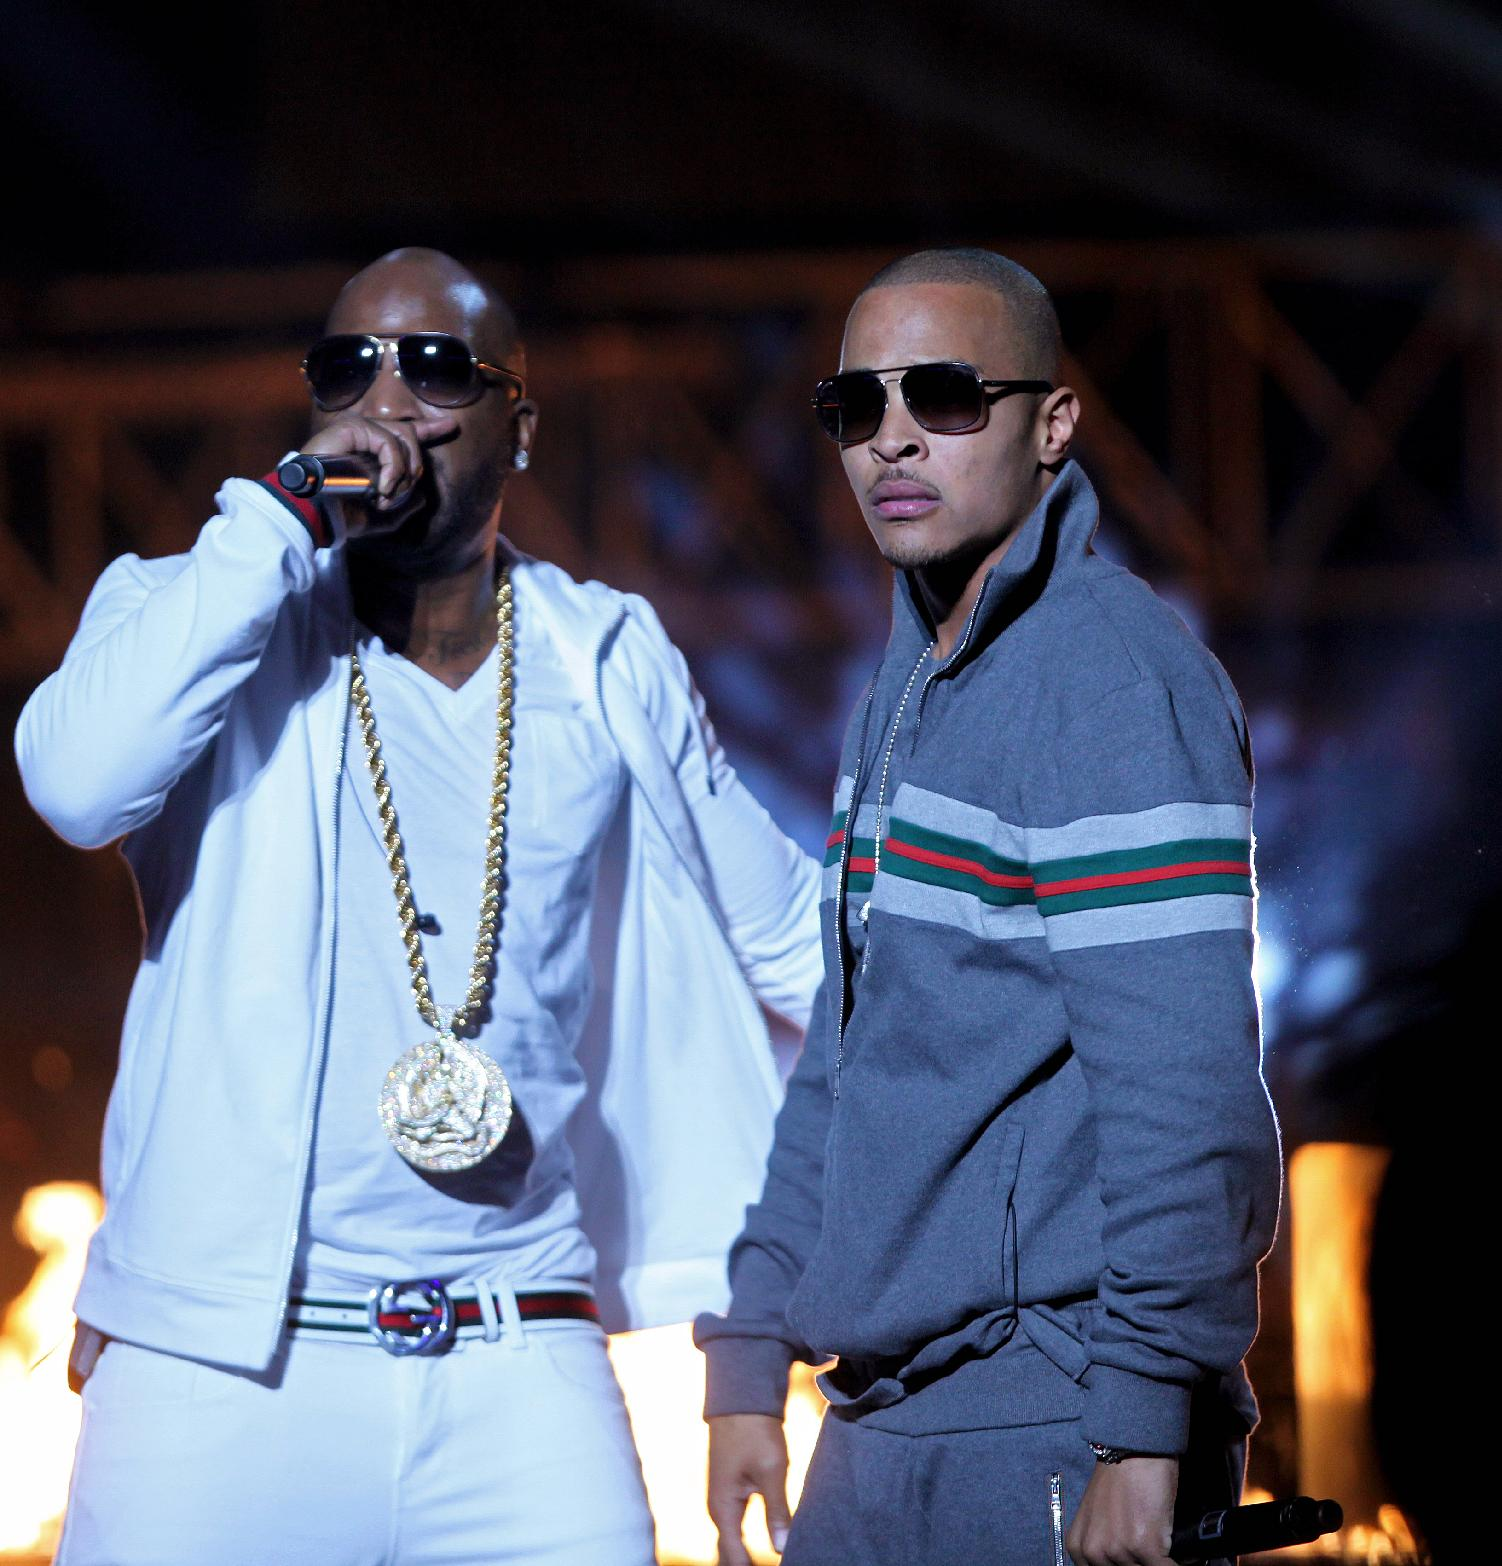 Cops: 2 shot at T.I., Young Jeezy party in N. Carolina club